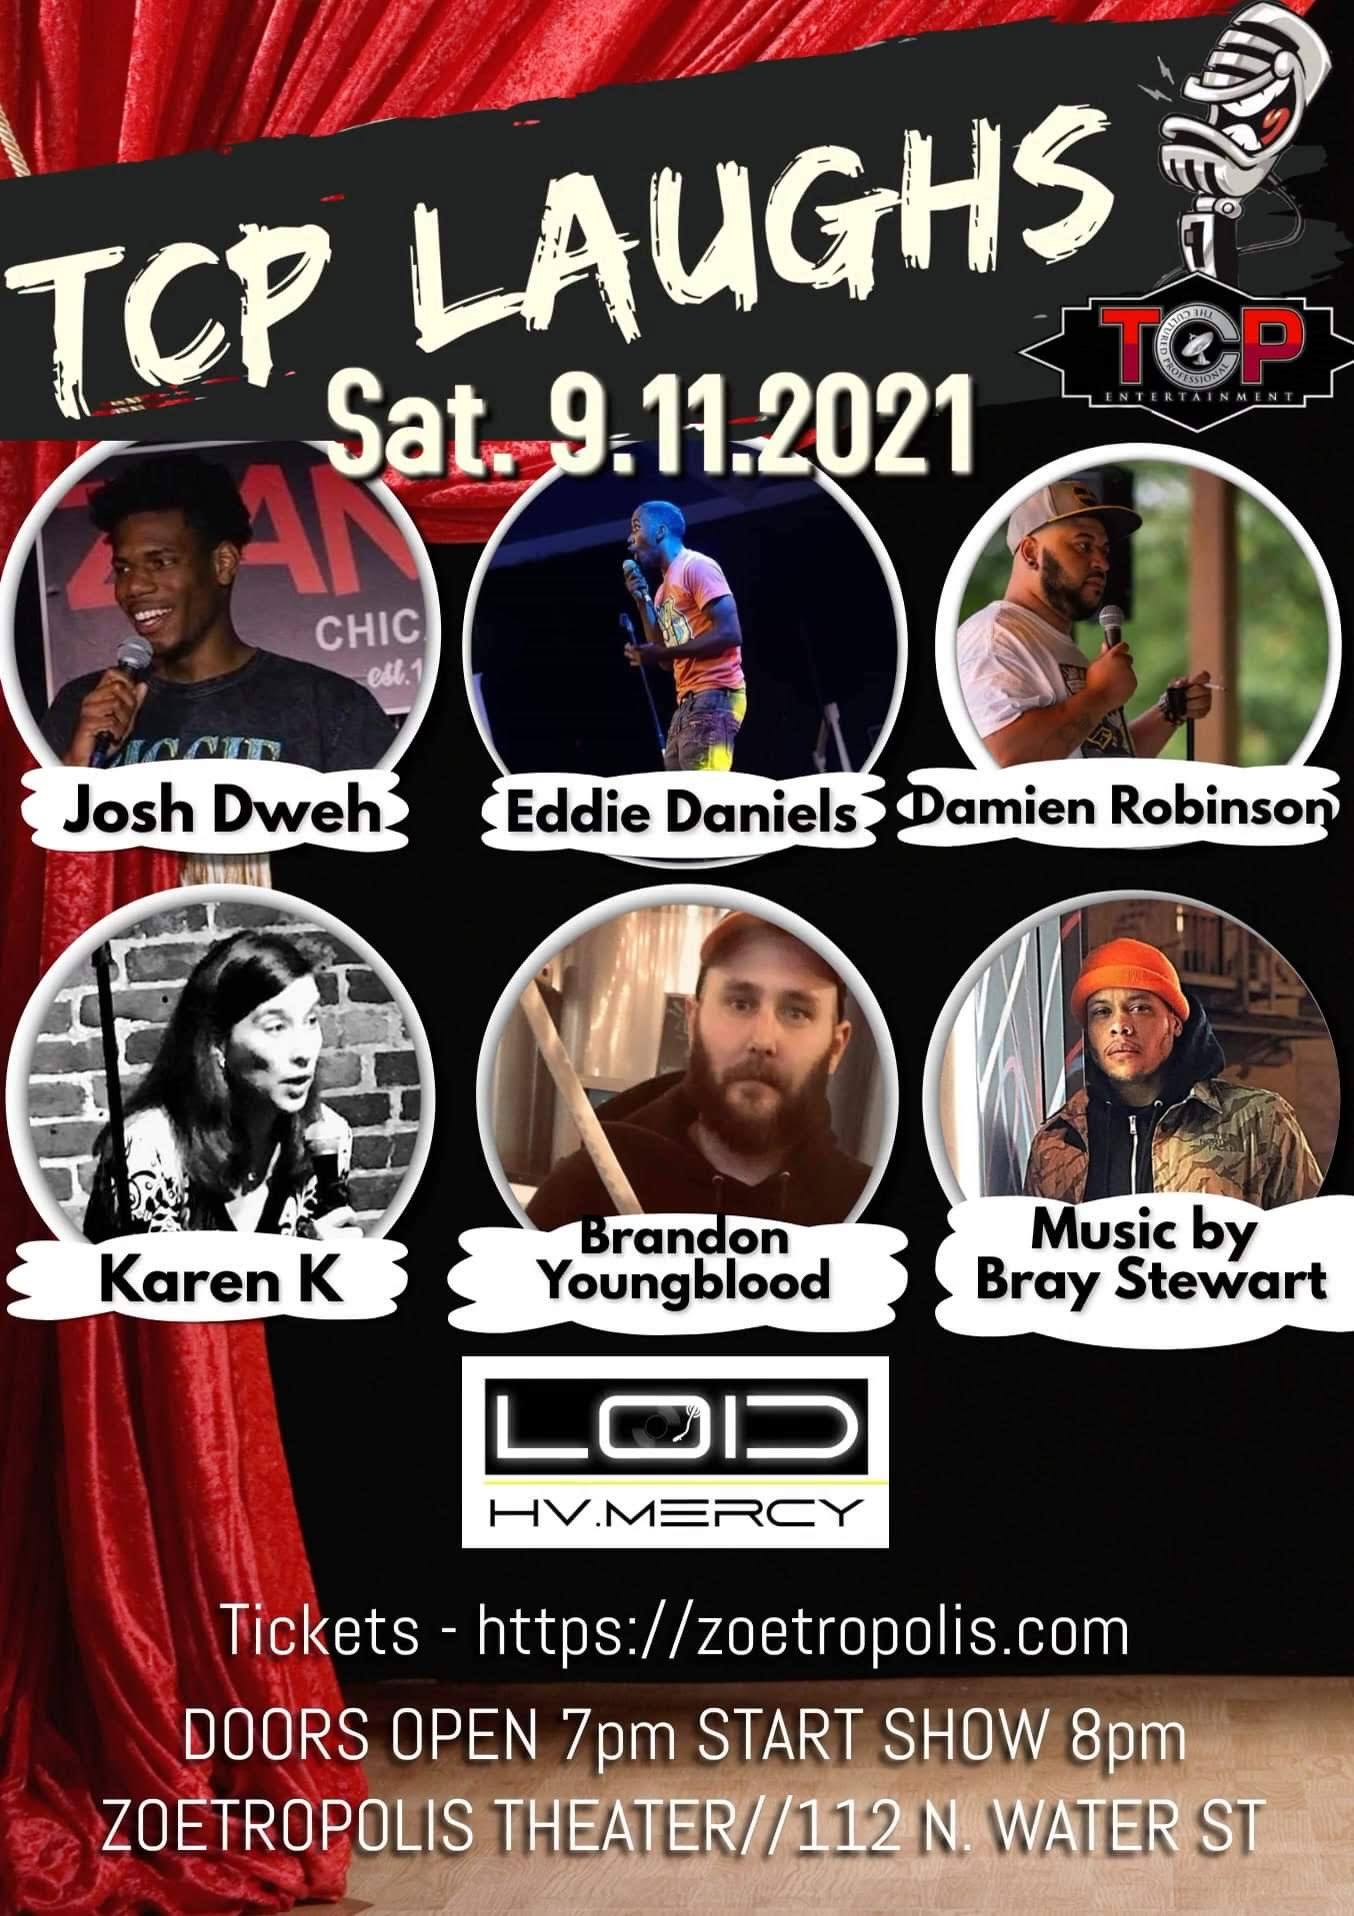 Poster for TCP Laughs Comedy & Variety Show